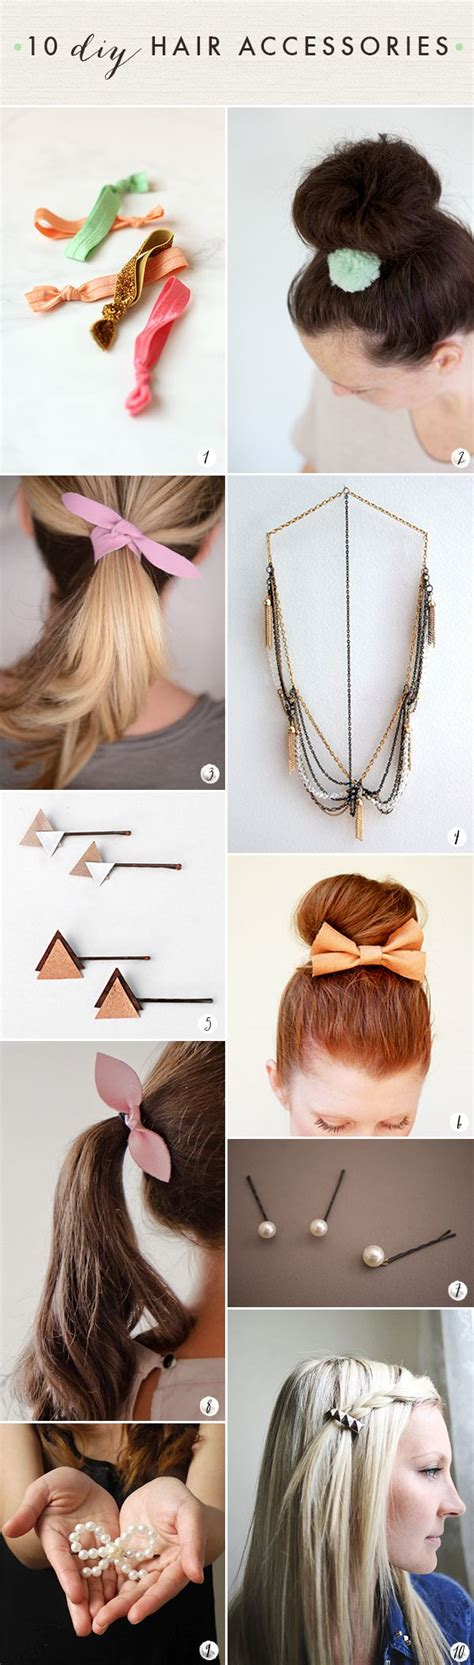 diy accessories 1000 images about general craftiness on